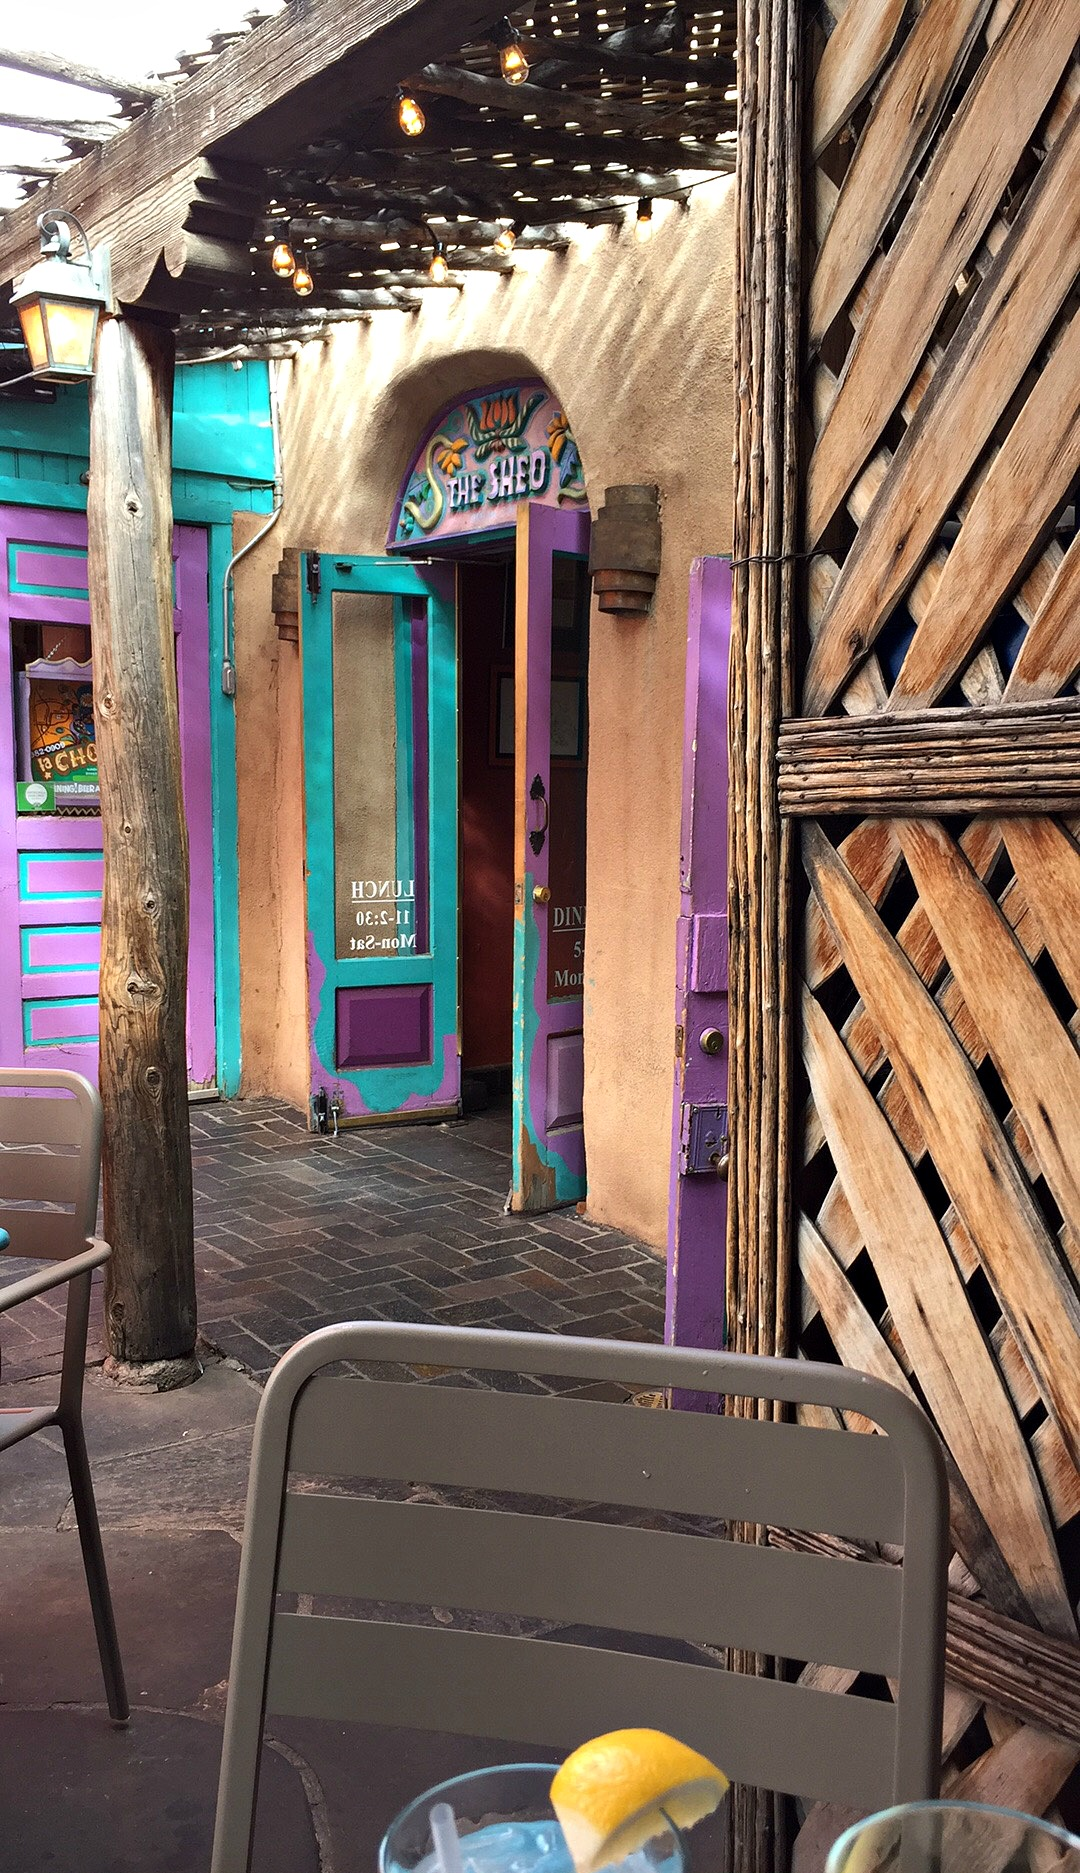 The Shed Restaurant in Santa Fe, A Dog friendly patio restaurant